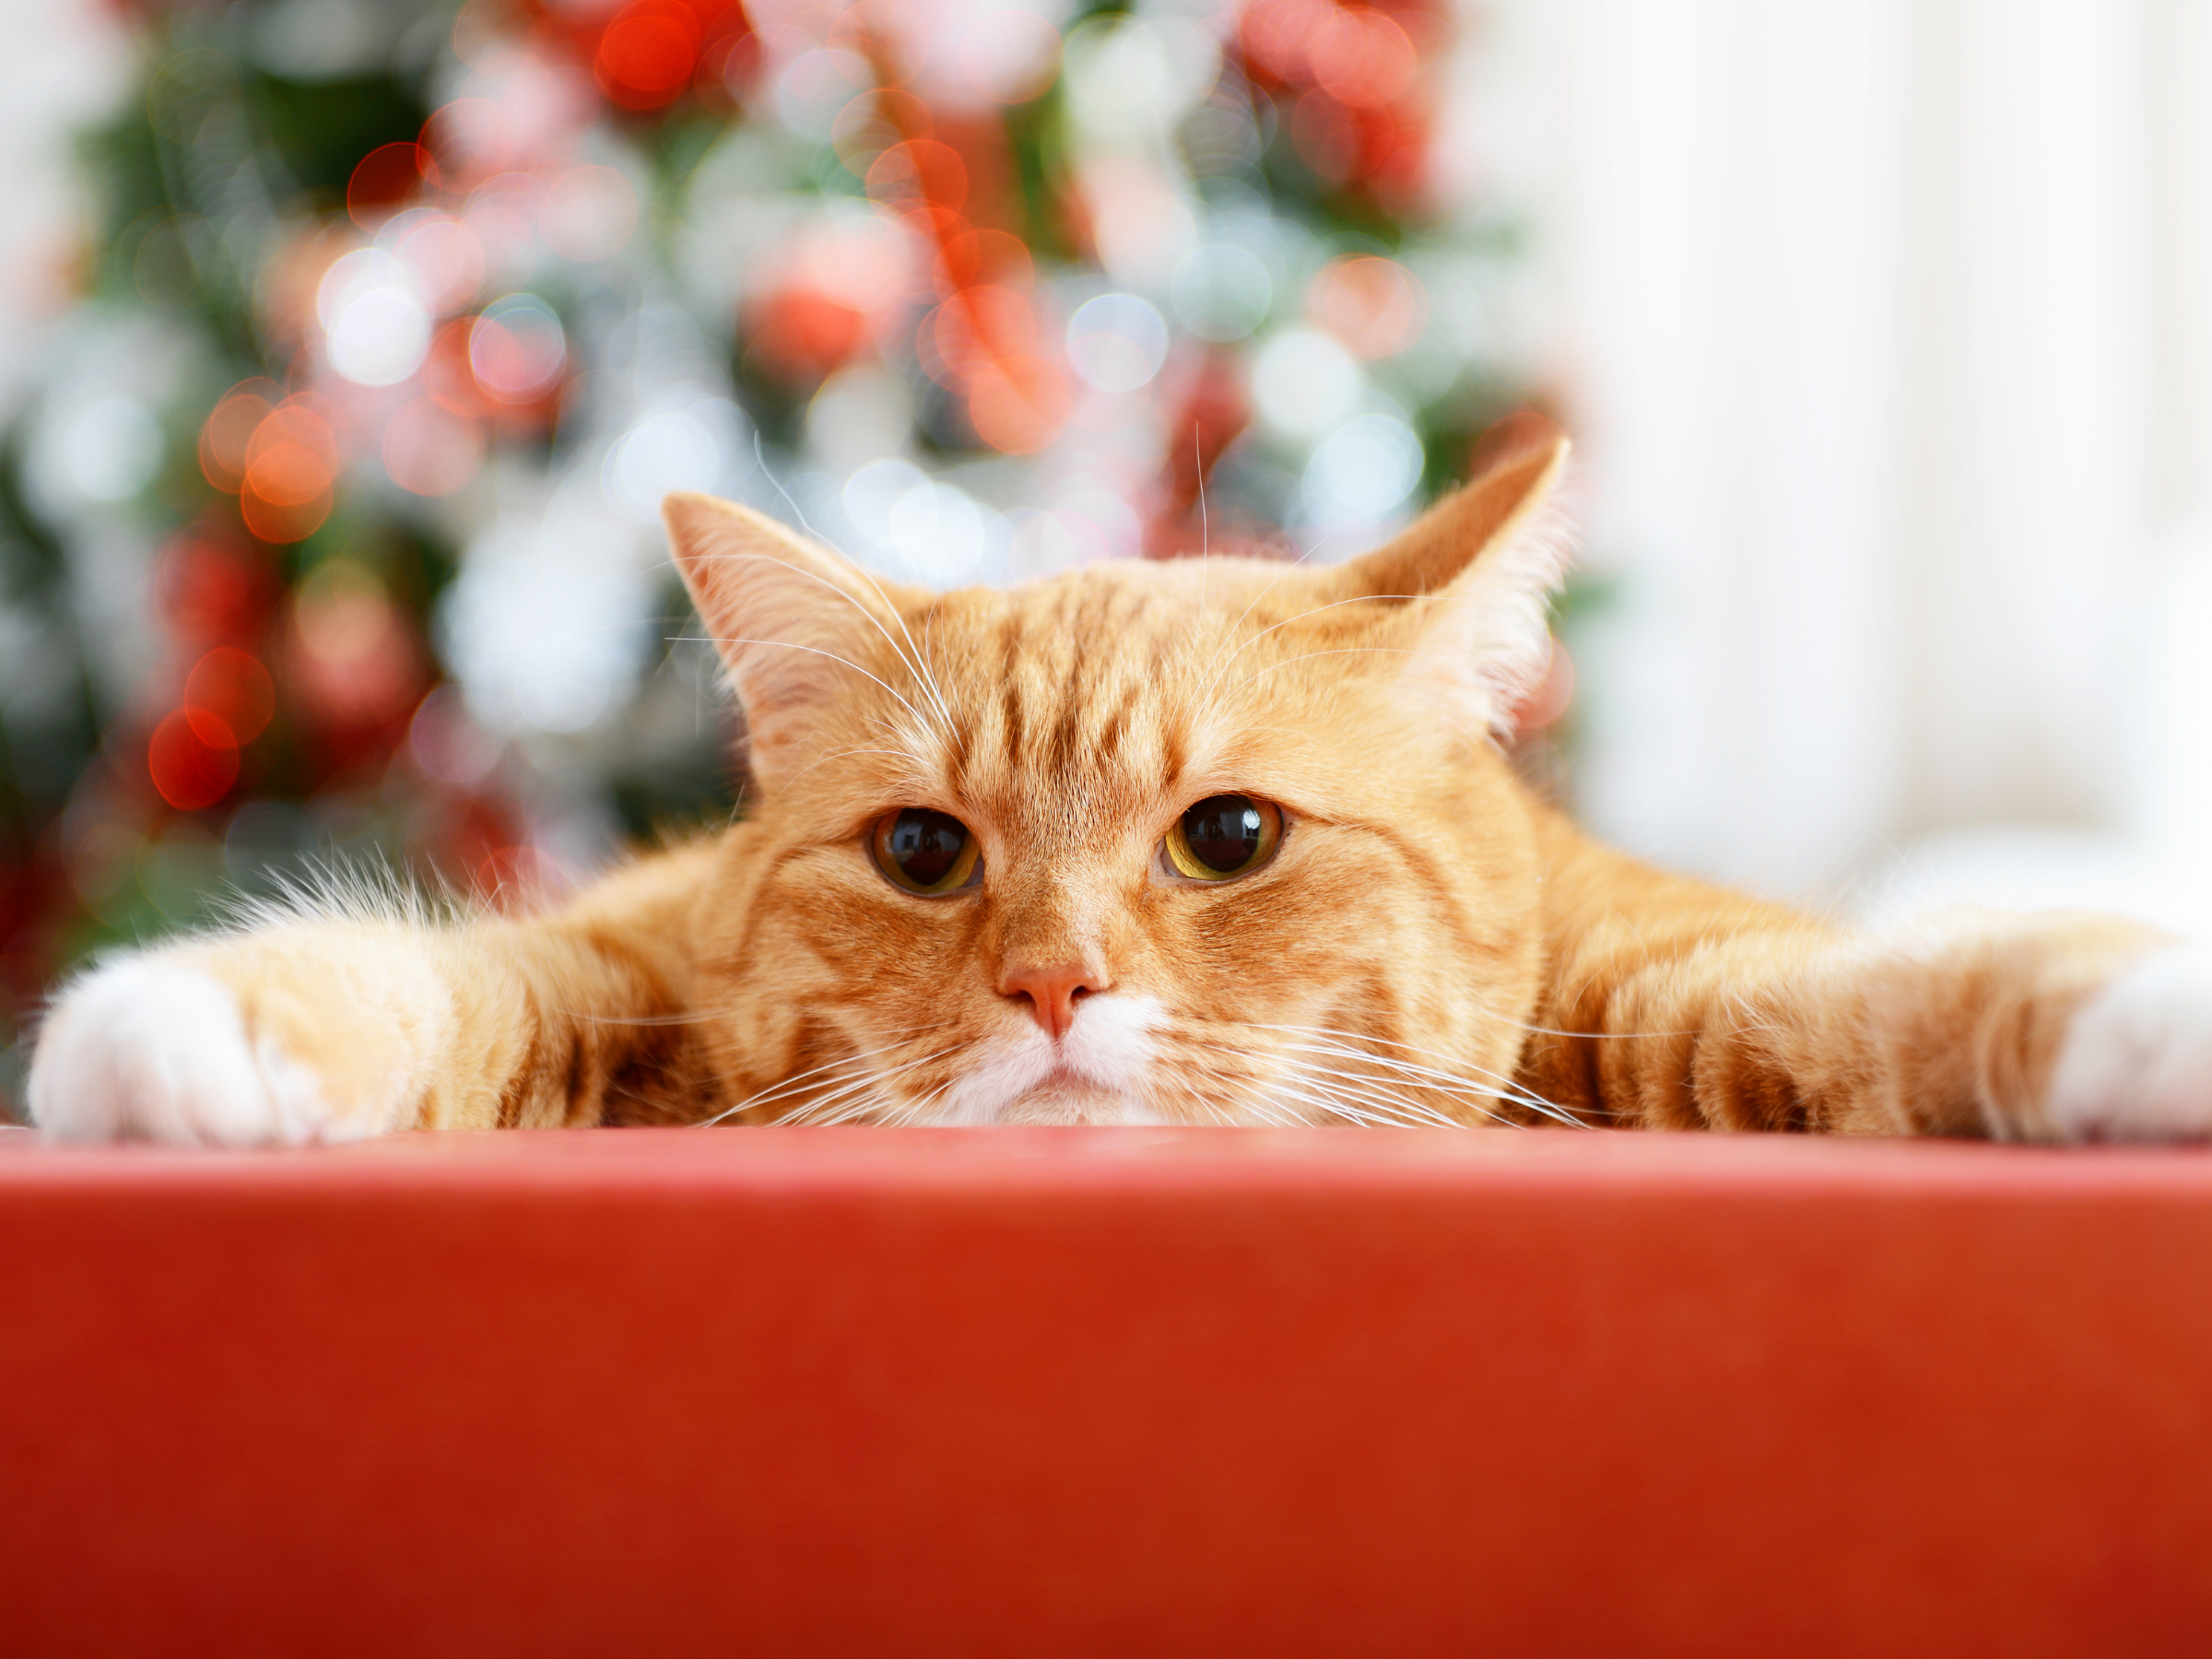 8 Ways To Enjoy The Holiday Season With Your Cat